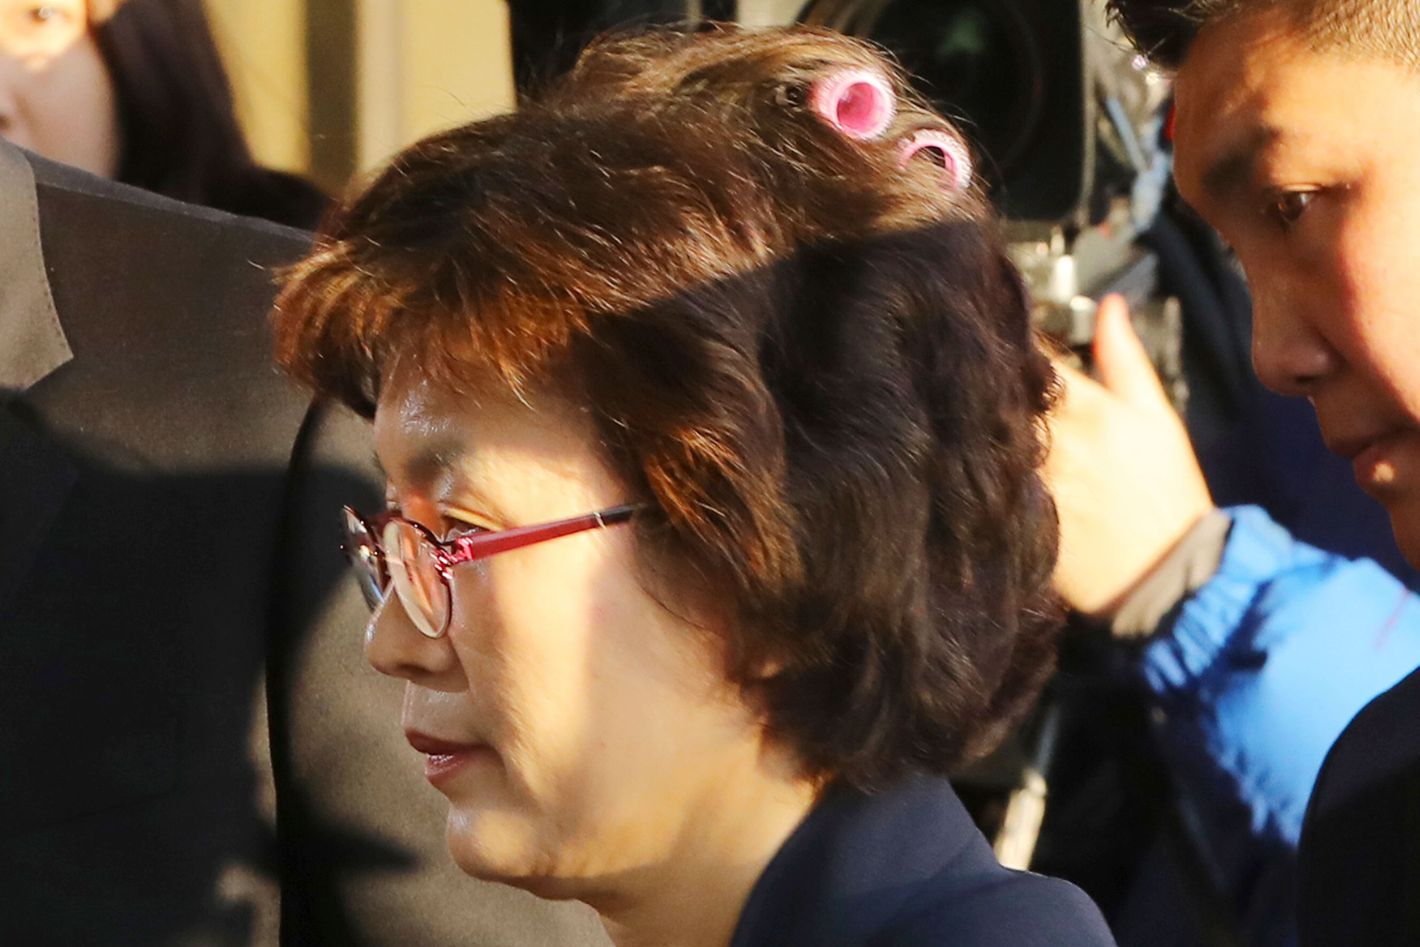 Korean Judge Lee Jung mi Wears Hair Rollers to Court